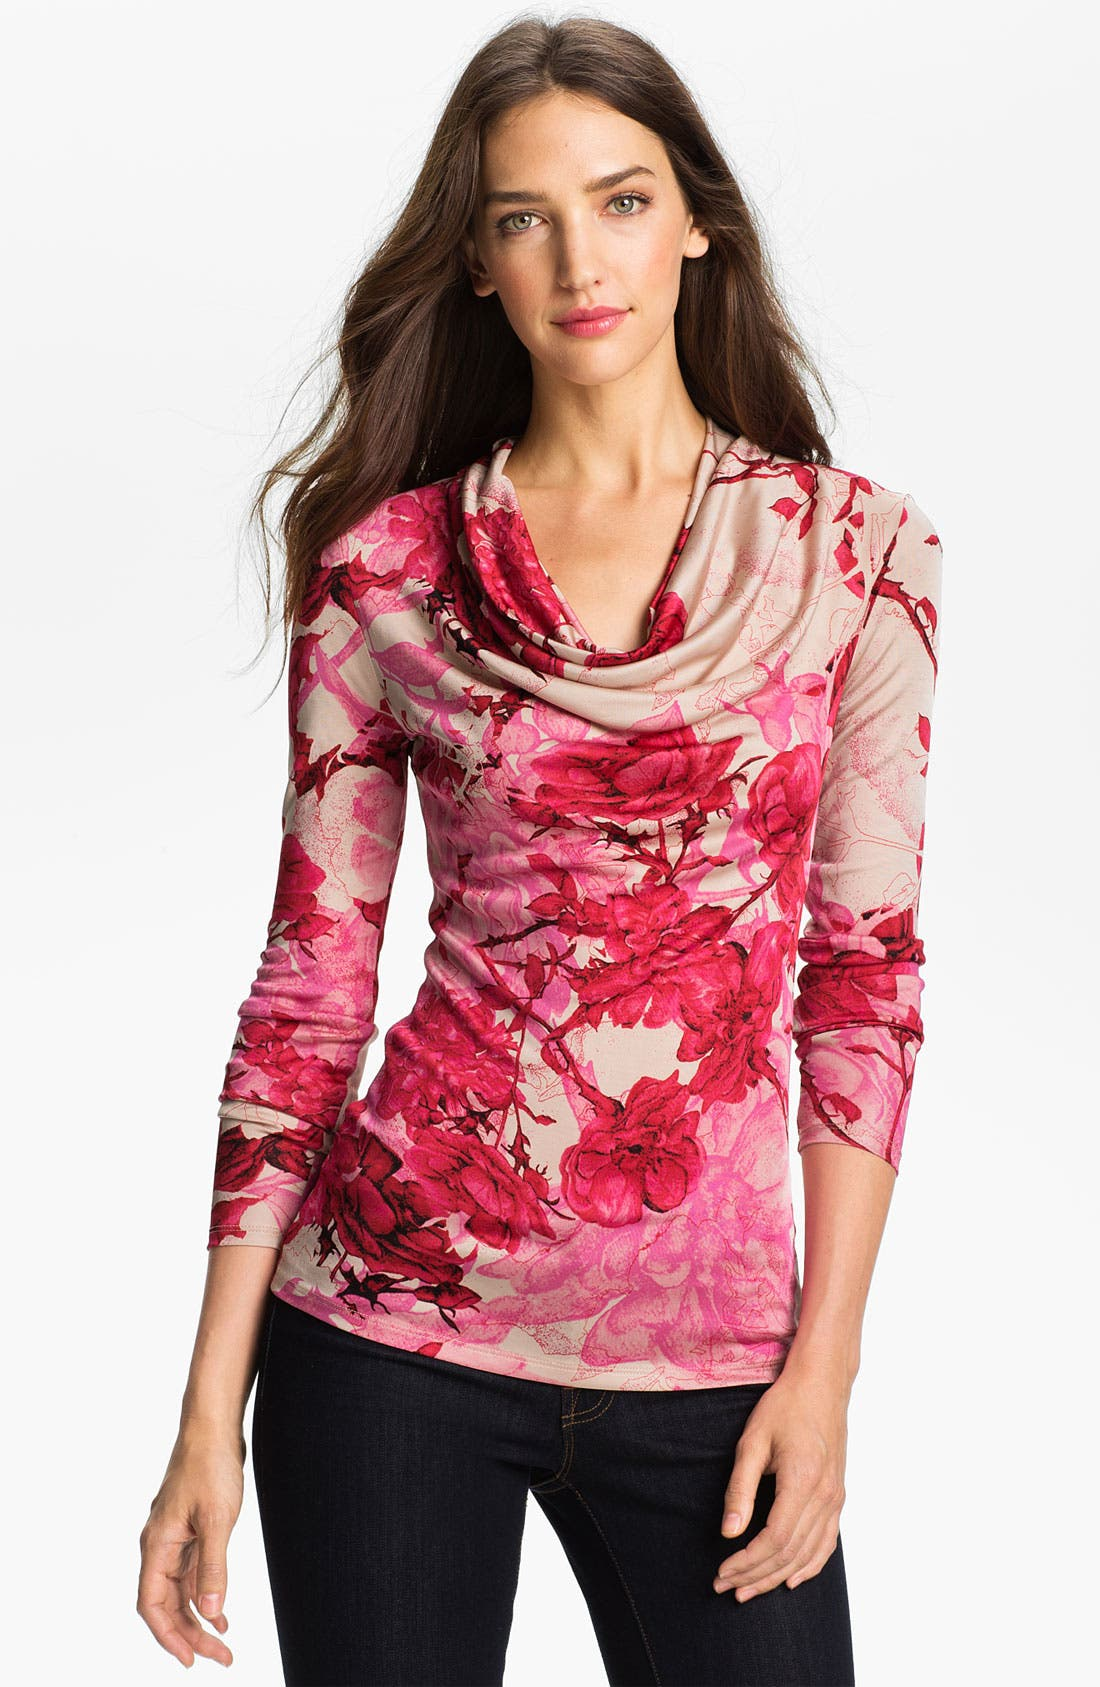 Alternate Image 1 Selected - Ted Baker London 'Floral Etchings' Print Top